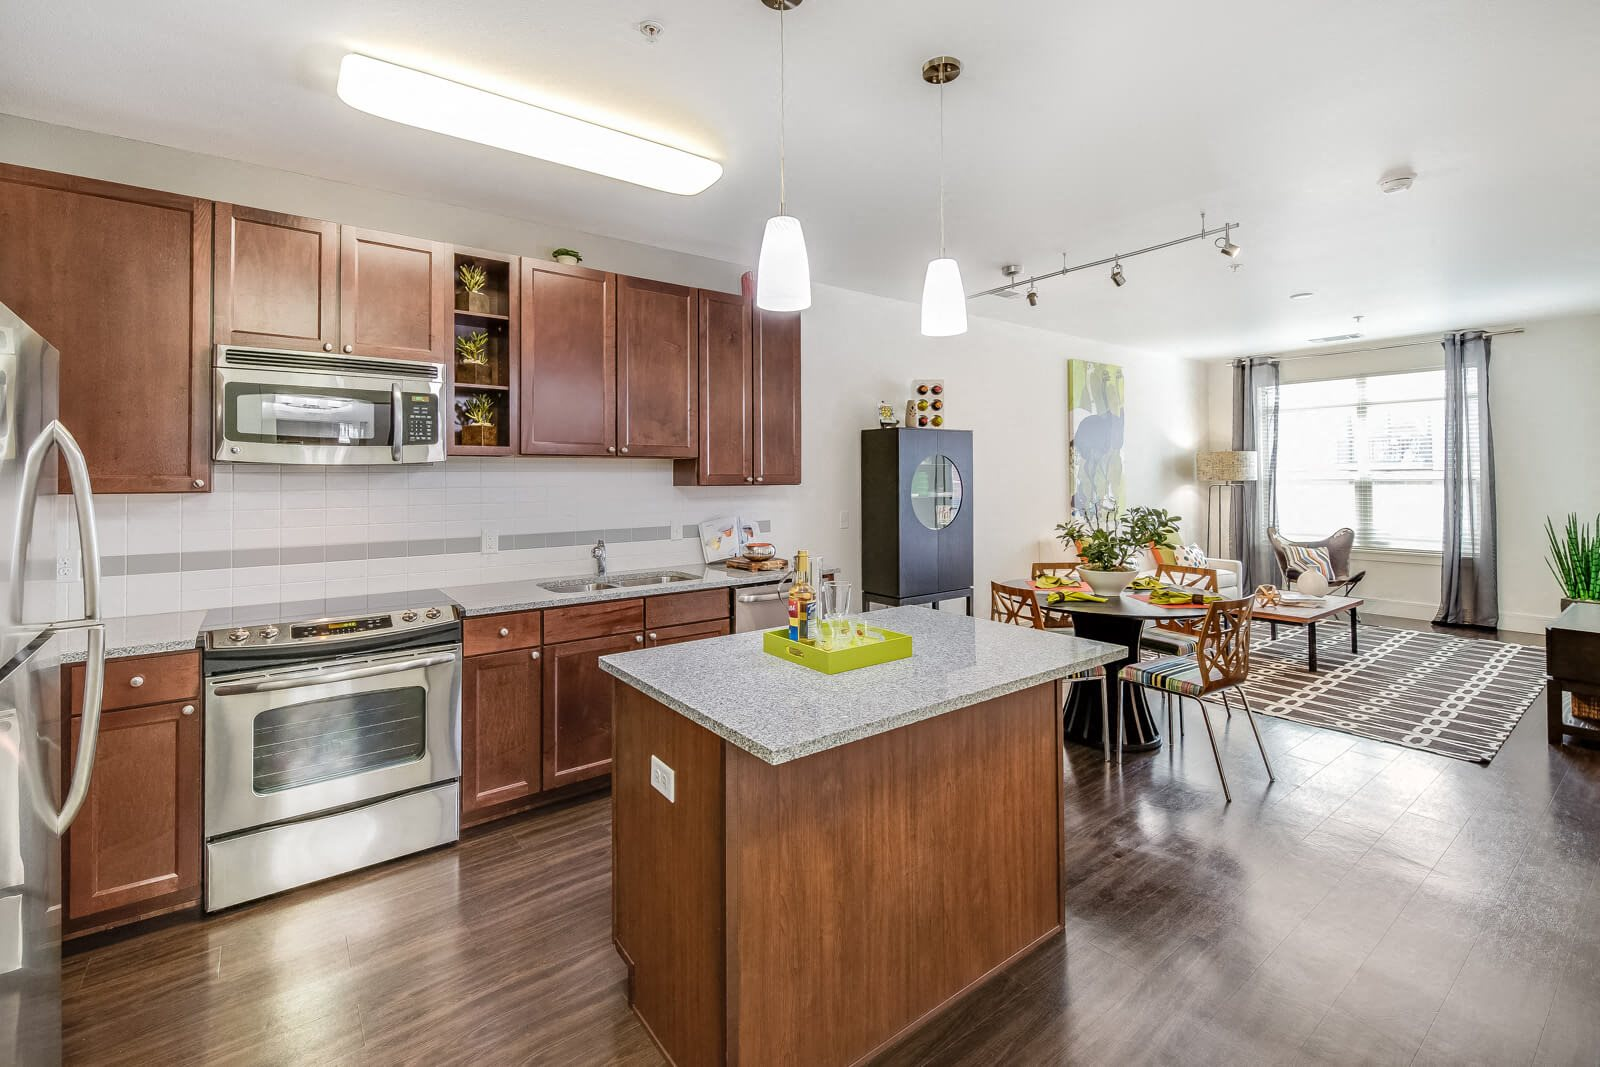 Newly Renovated Apartment Homes Available at The Manhattan Tower and Lofts, Denver, CO